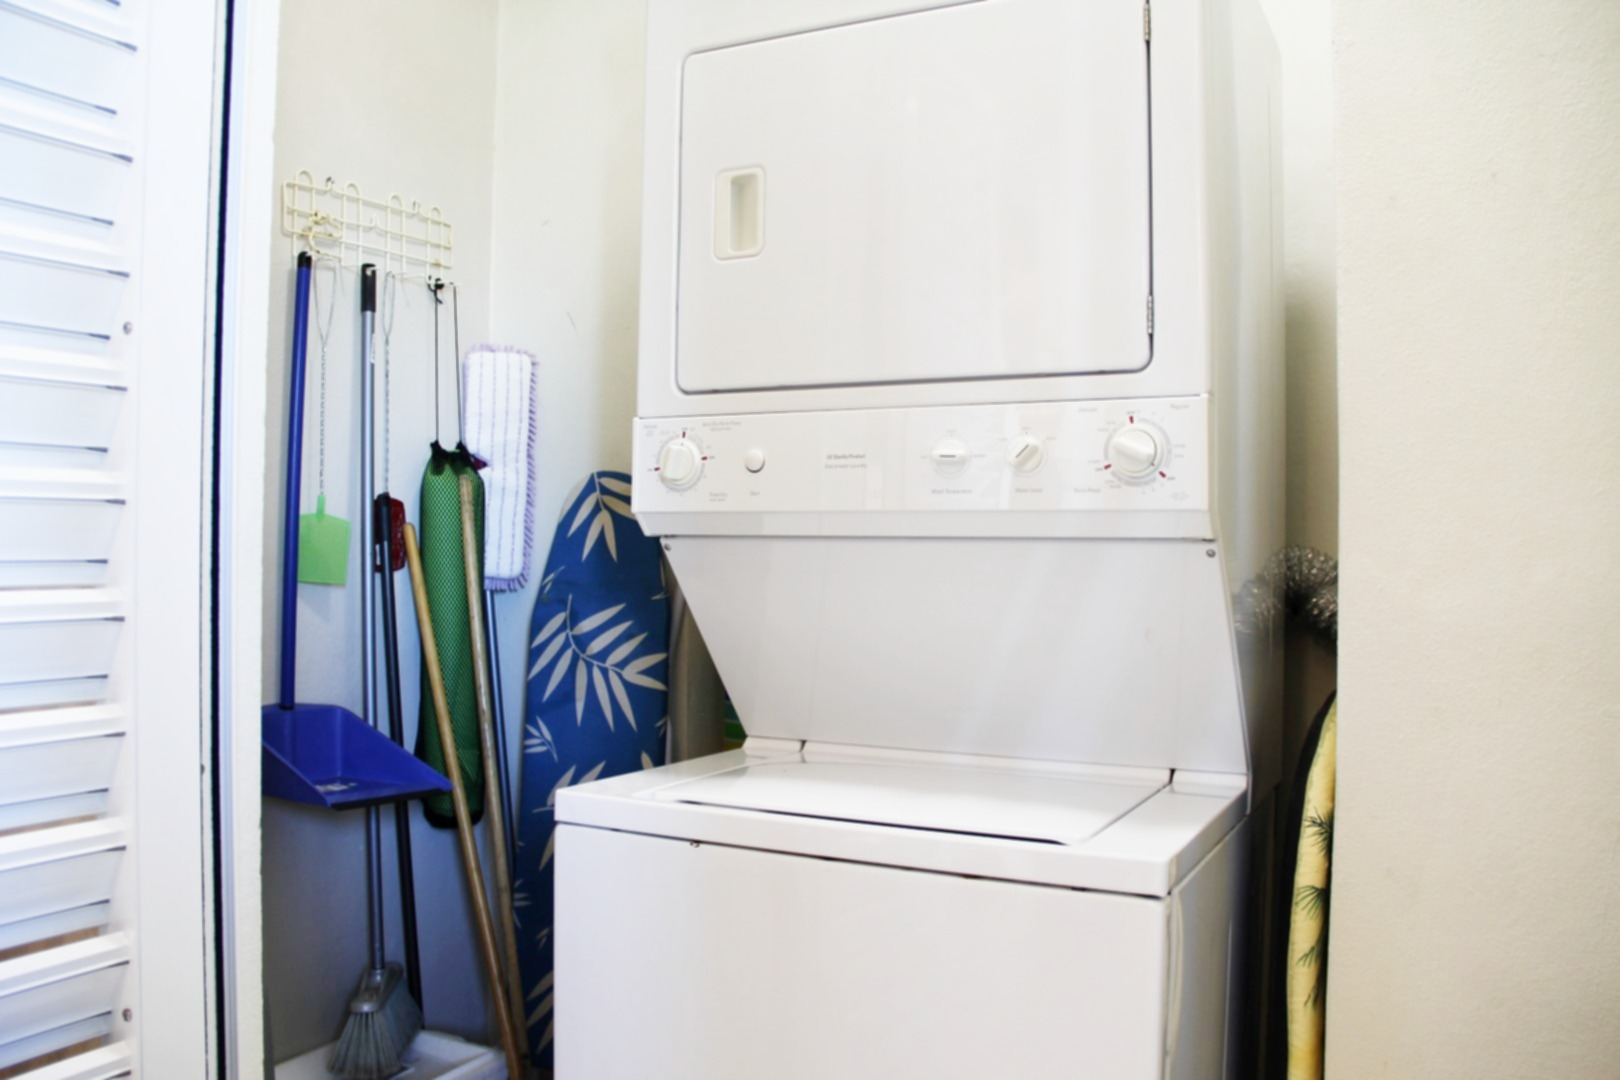 Full-sized washer and dryer in cleaning closet.